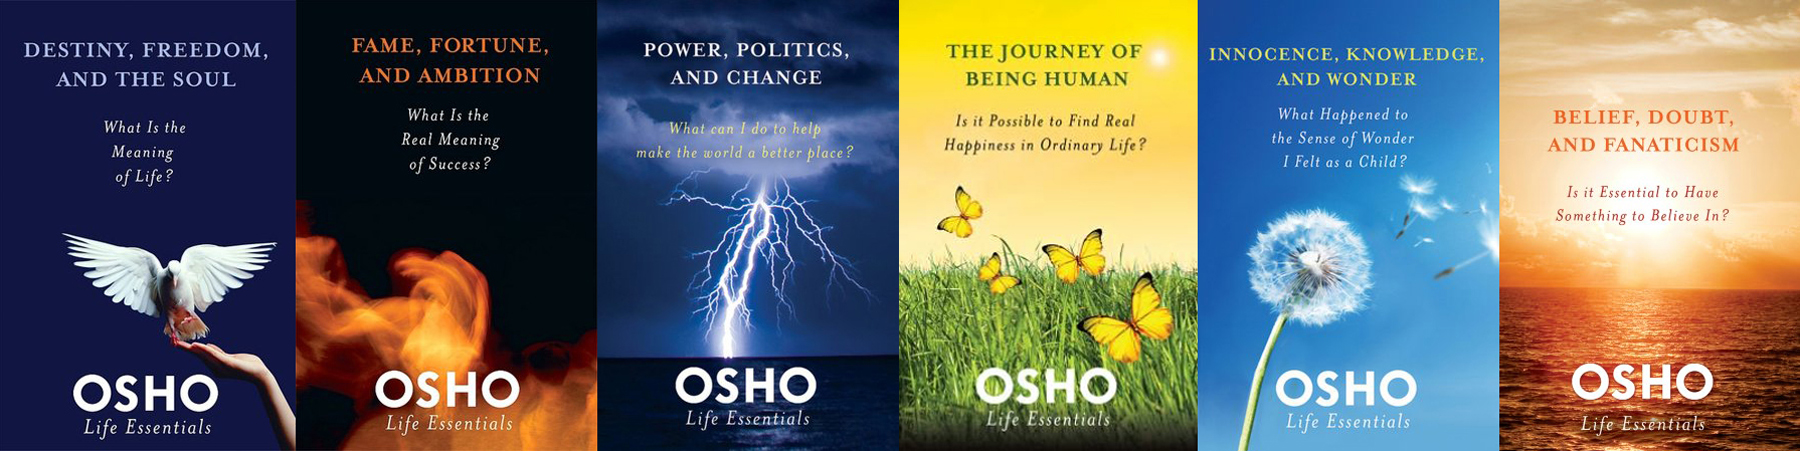 Osho life essentials the most important questions in life